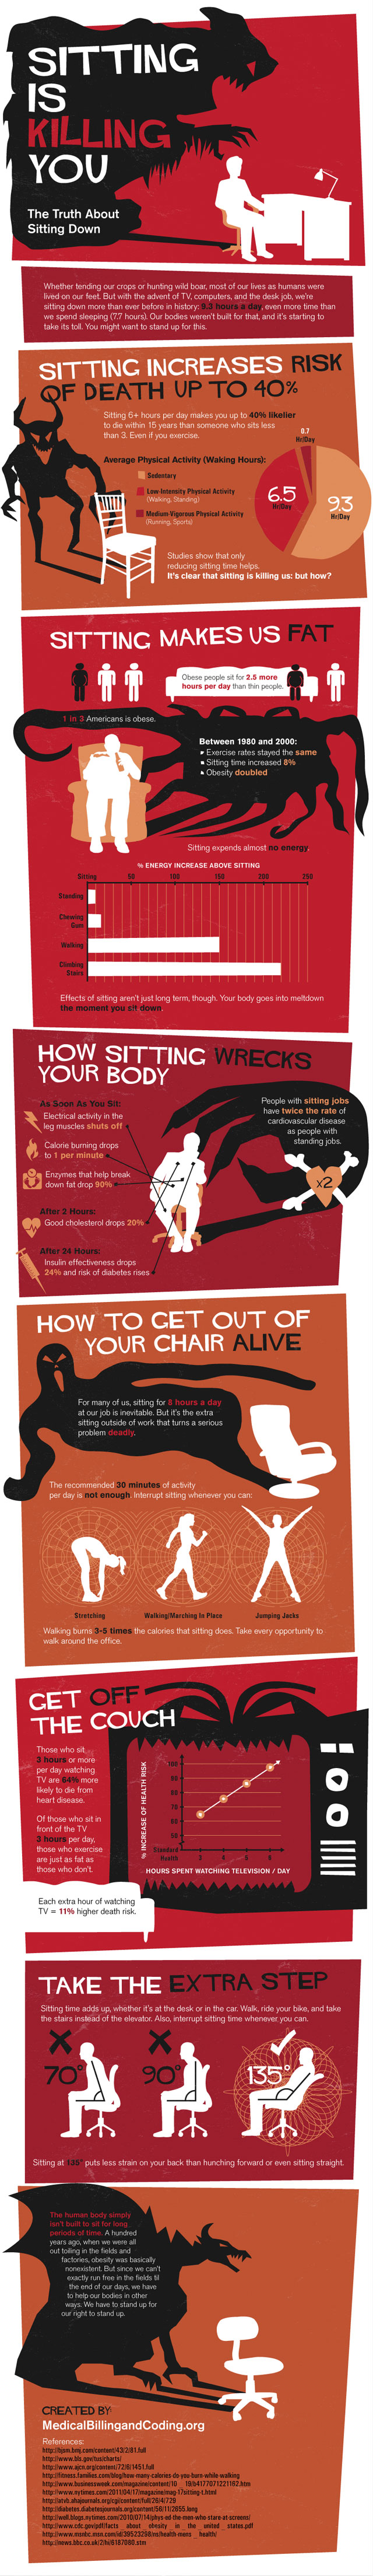 Sitting Down Is Killing You Infographic